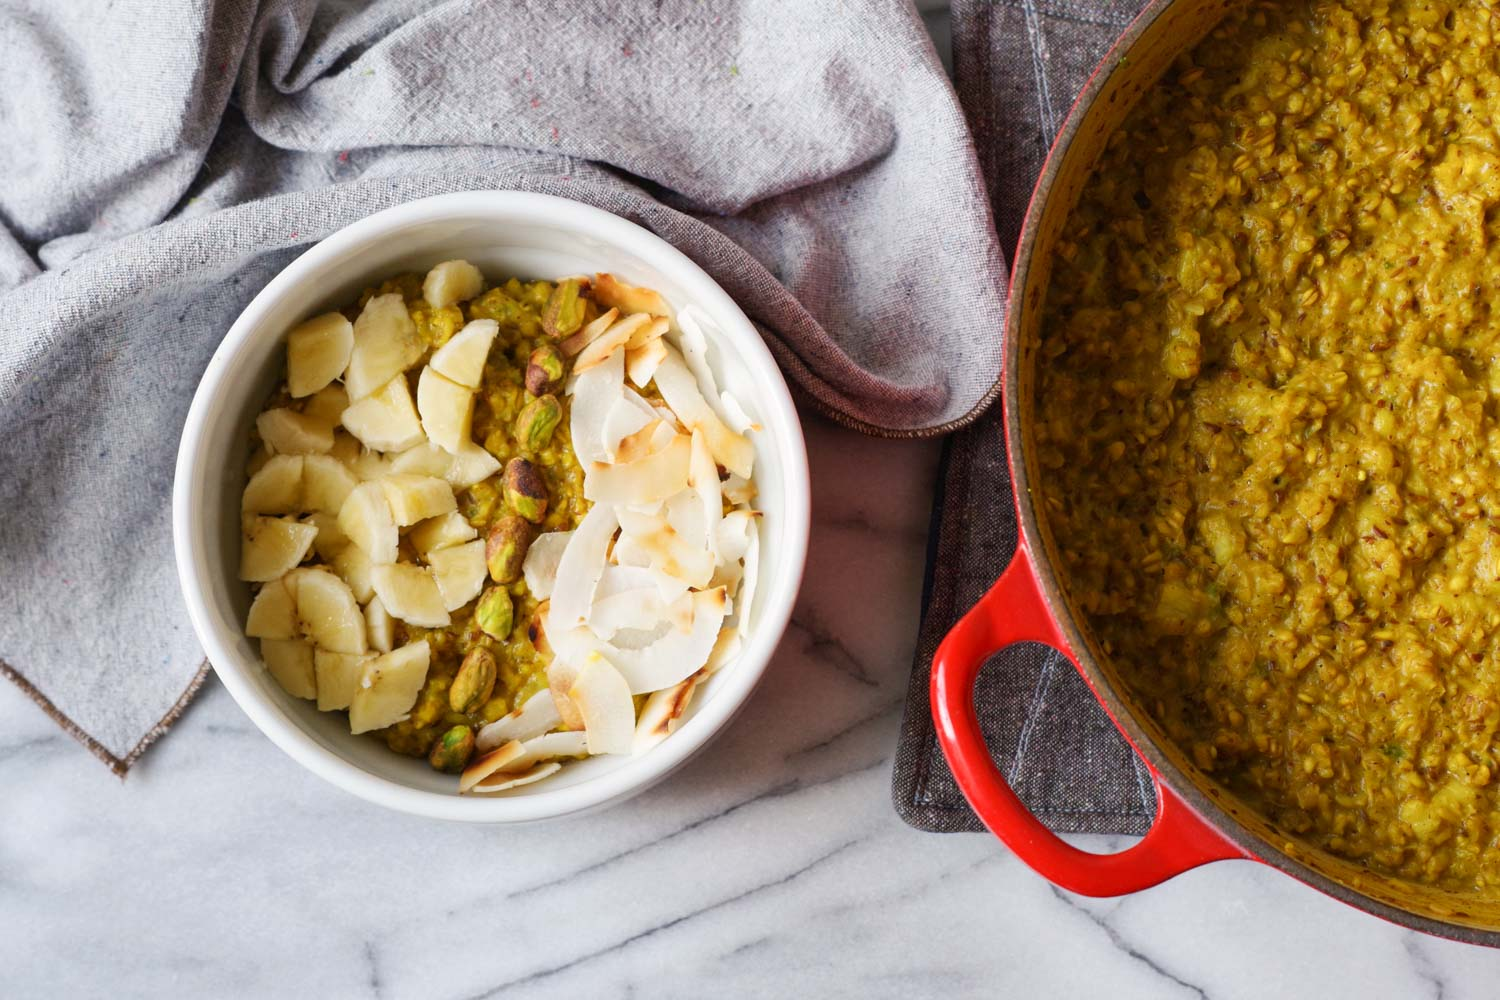 Pot of gold: Golden banana Oatmeal topped with pistachios, bananas, and toasted coconut.